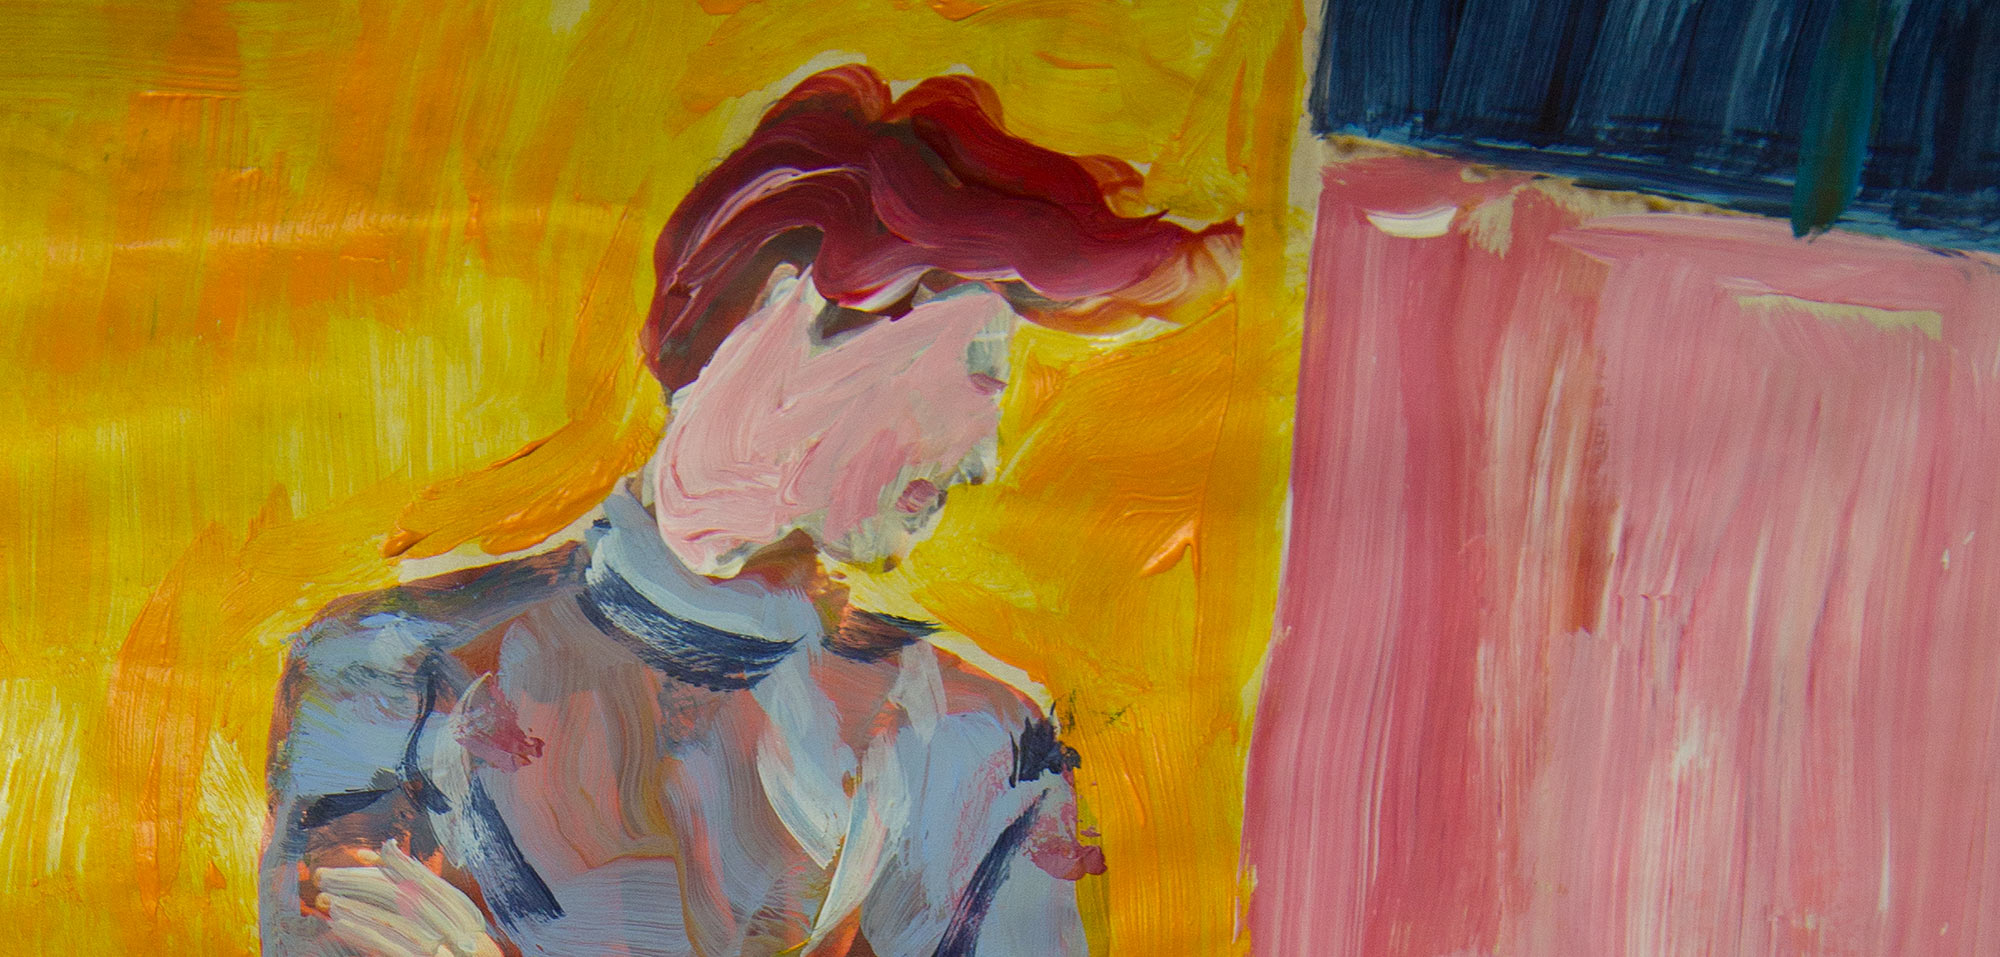 Never mind original painting by Judith Marder